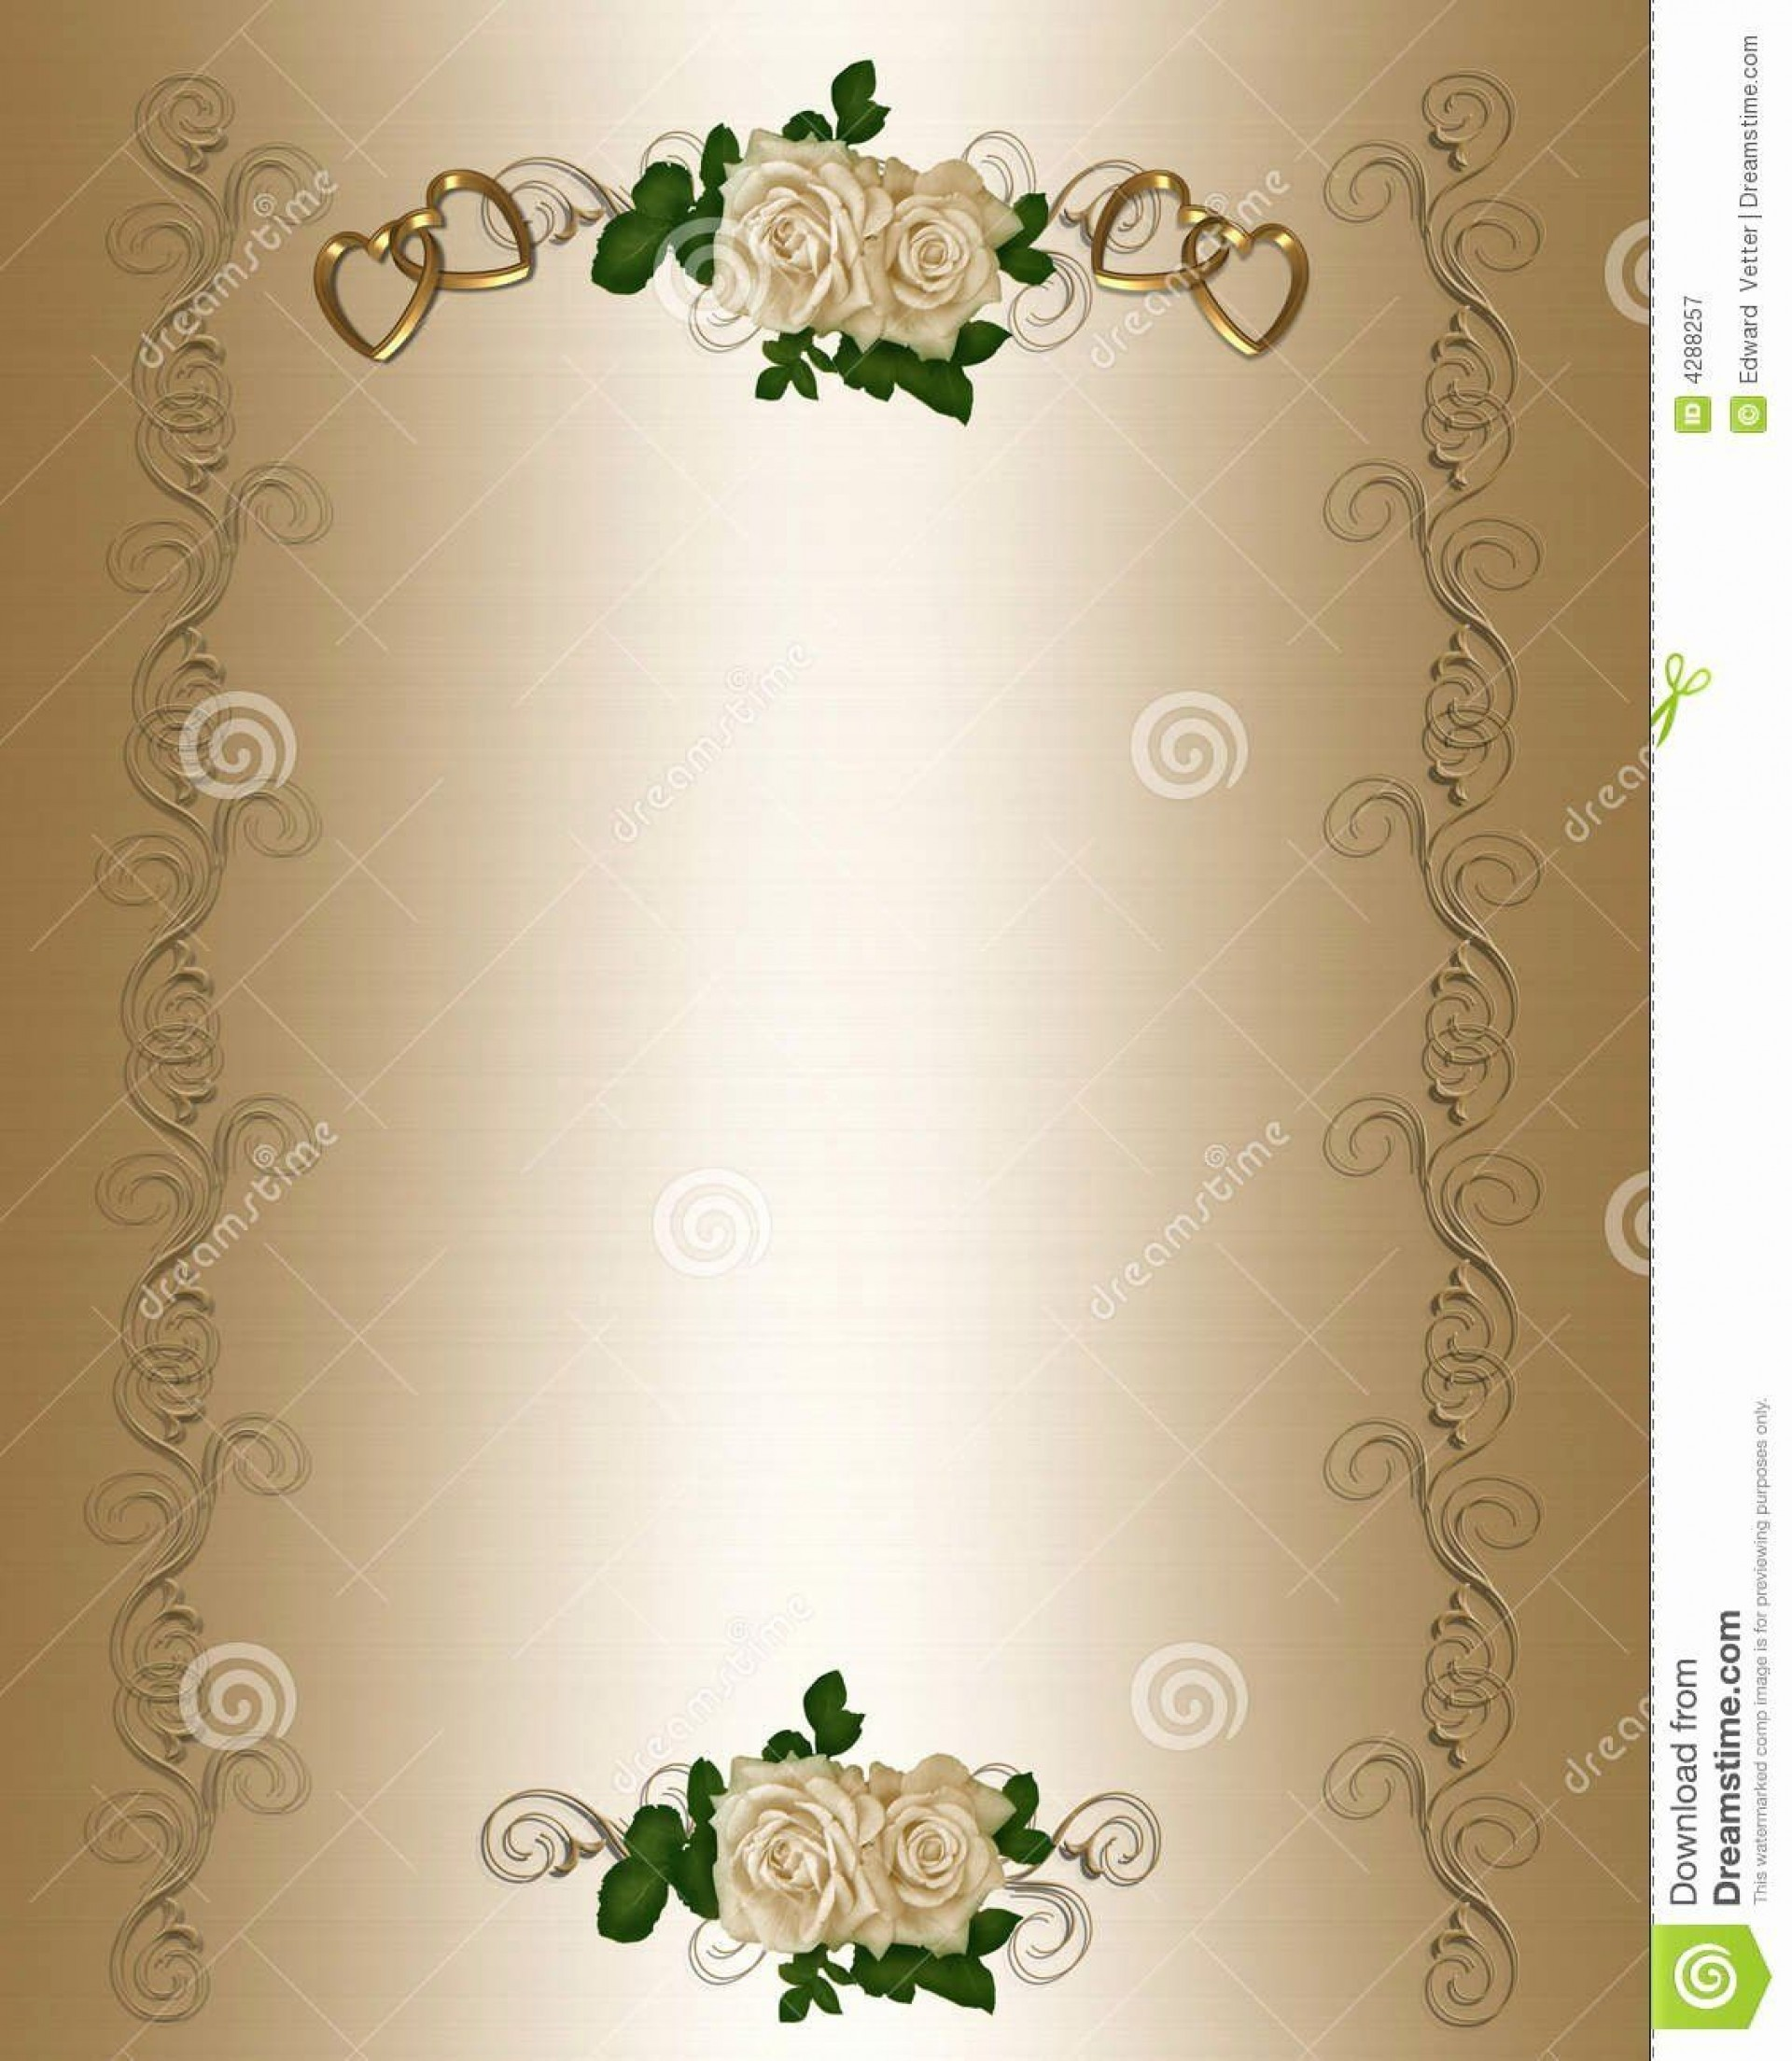 006 Excellent Free Download Invitation Card Template Inspiration  Templates Indian Wedding Design Software Png1920